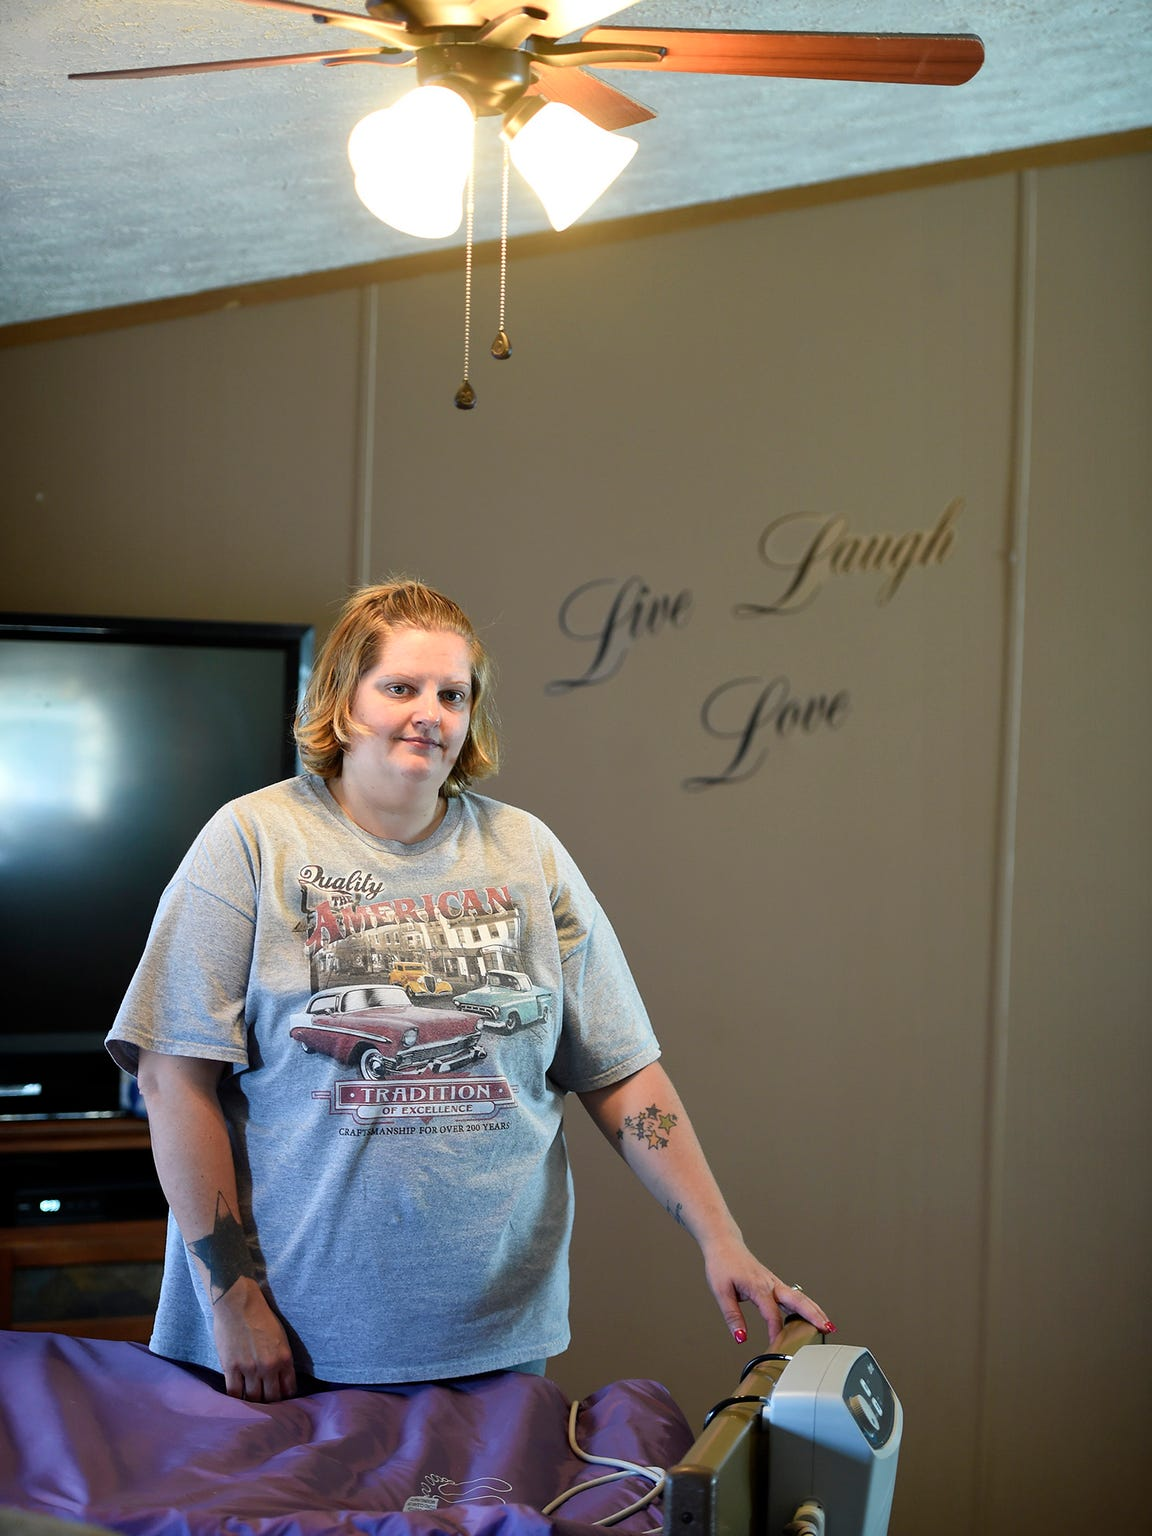 Christina Grenier poses for a picture Oct. 17 inside a North Lebanon Township home belonging to her mother, Kathleen Grenier. Grenier did not appreciate the care her mother received at The Gardens of Campbelltown, formerly Twin Oaks Nursing Home.